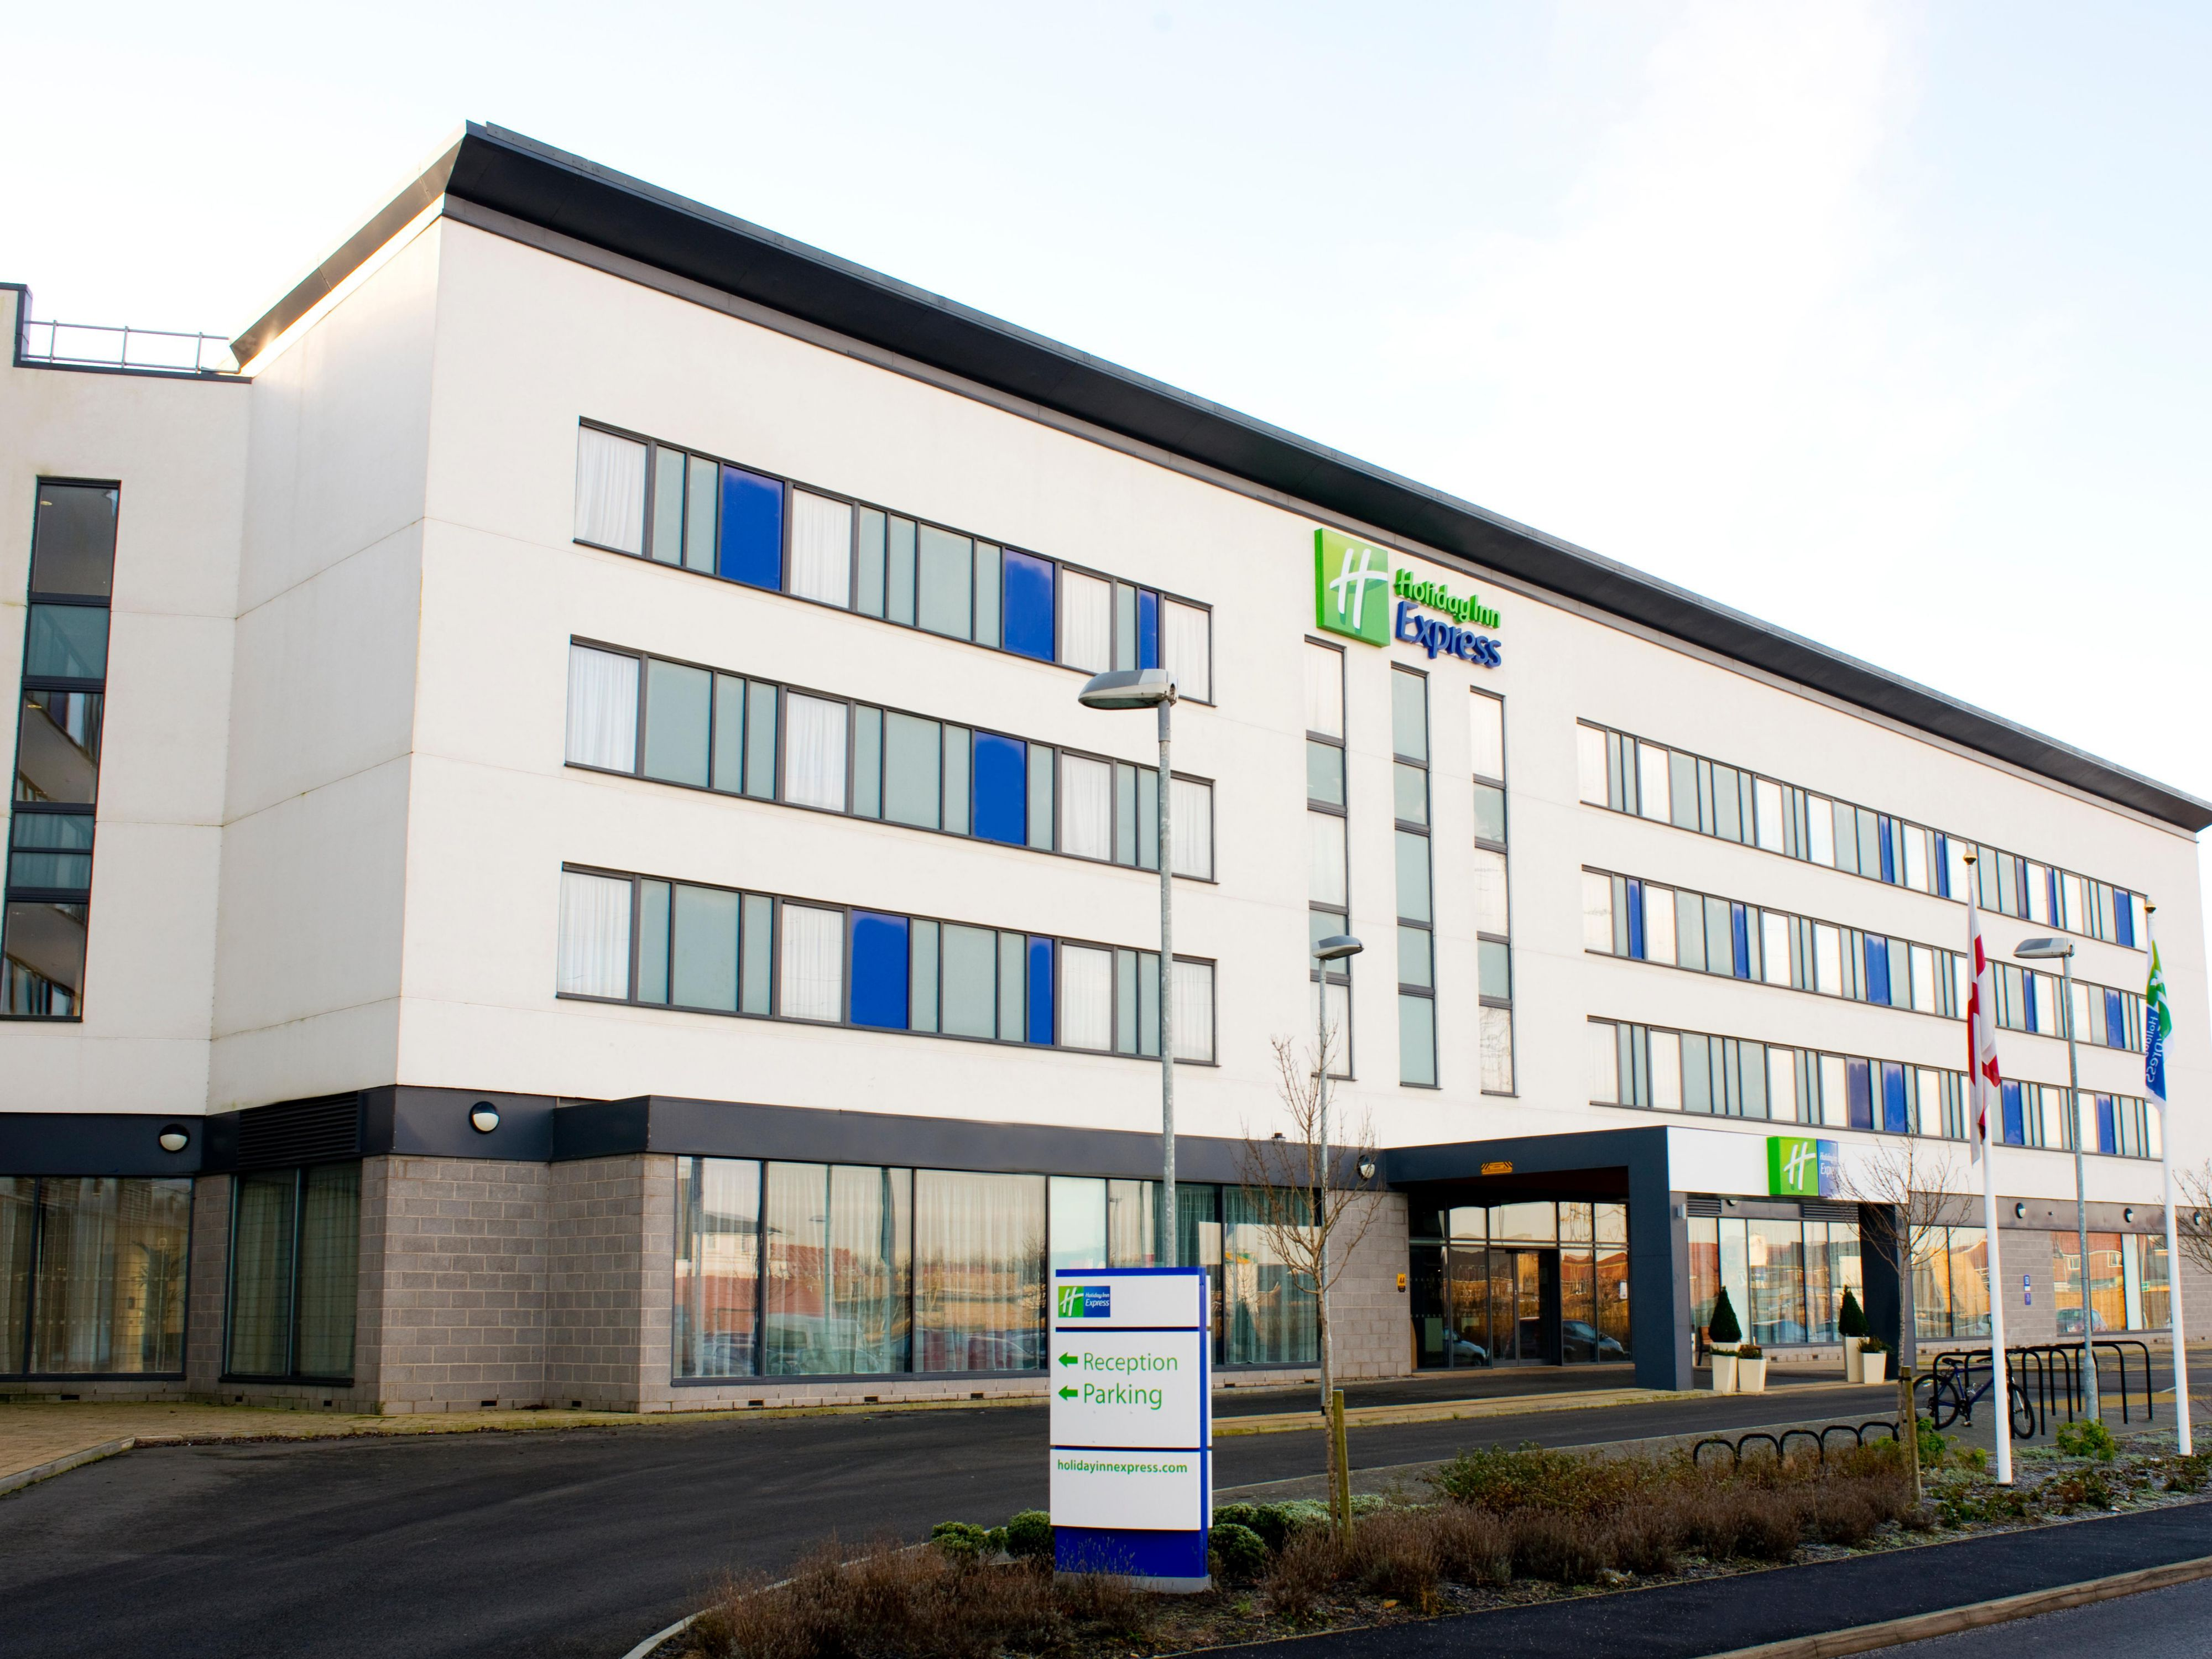 Welcome to the Holiday Inn Express Rotherham North